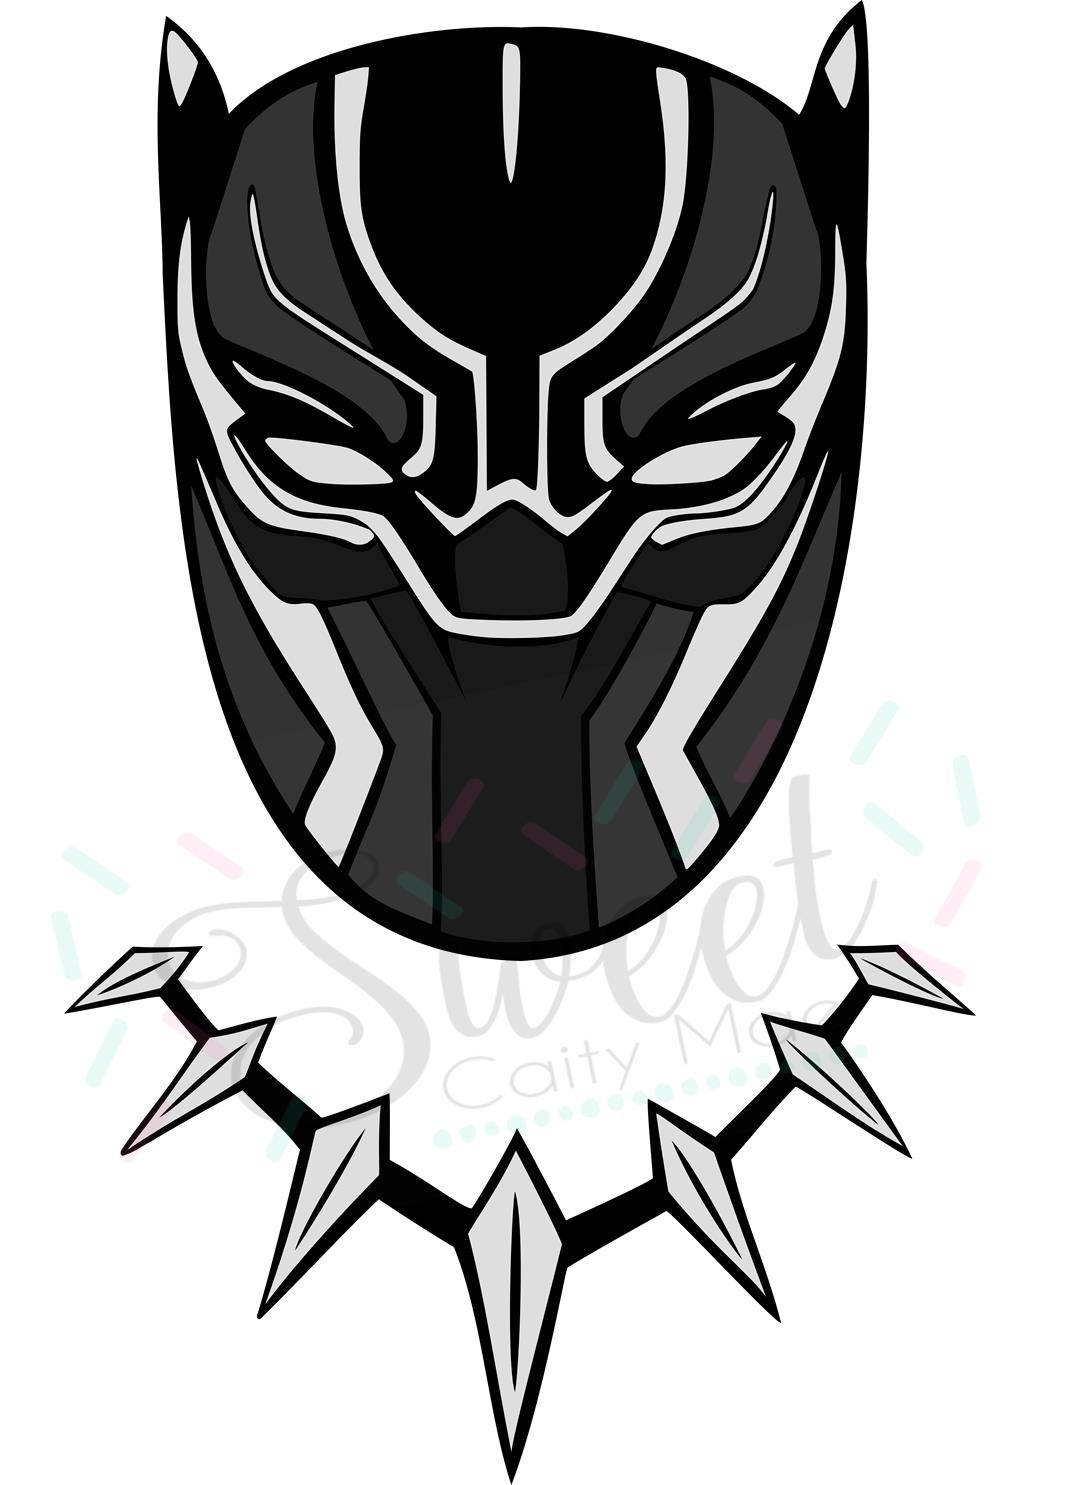 Black panther svg download black panther svg for Marvel black cat mask template